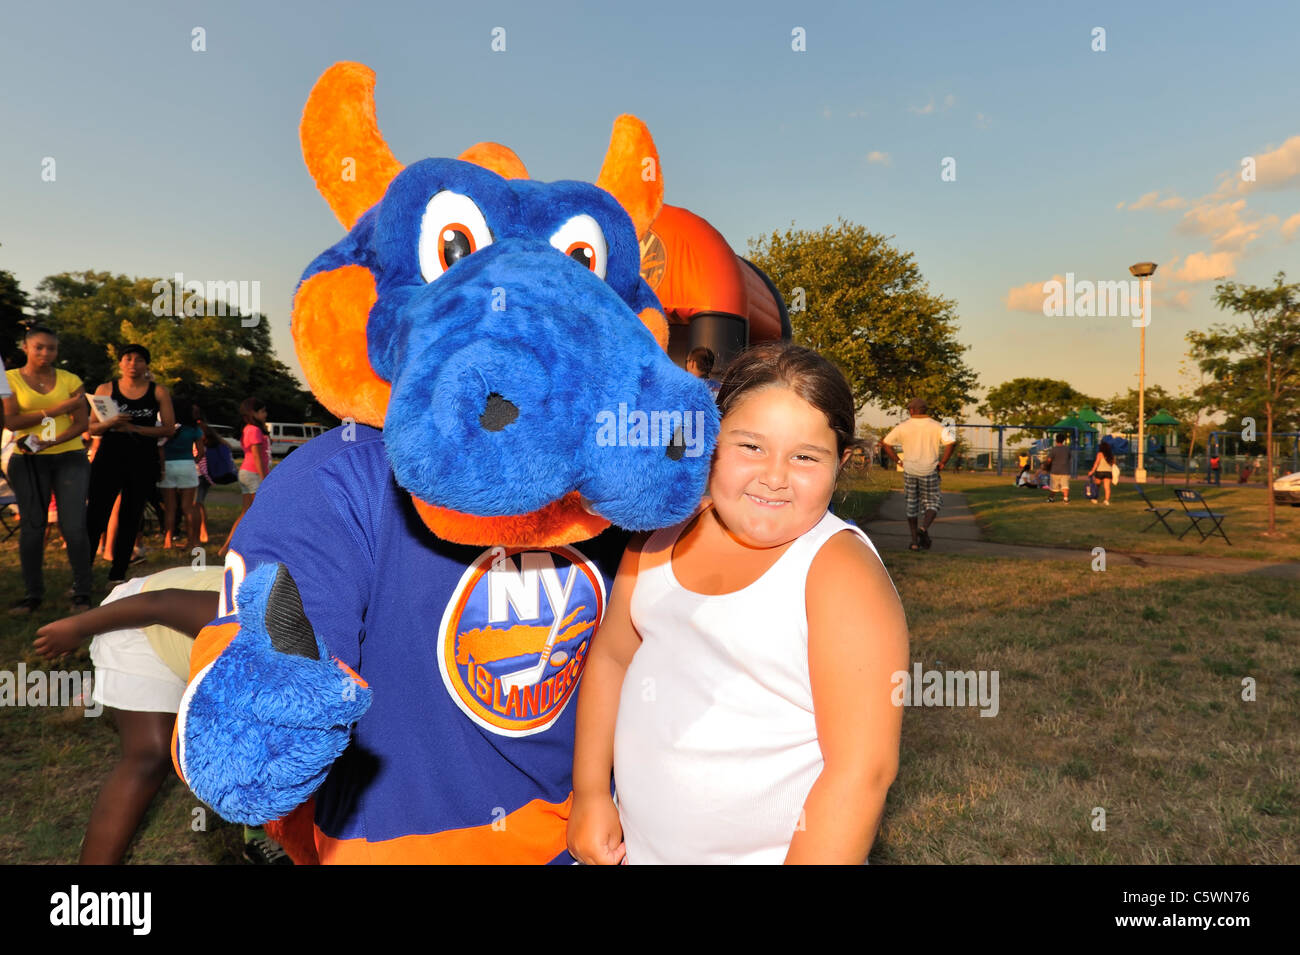 New York Islanders mascot, Sparky the Dragon, going 'thumb's up' with young girl, at National Night - Stock Image